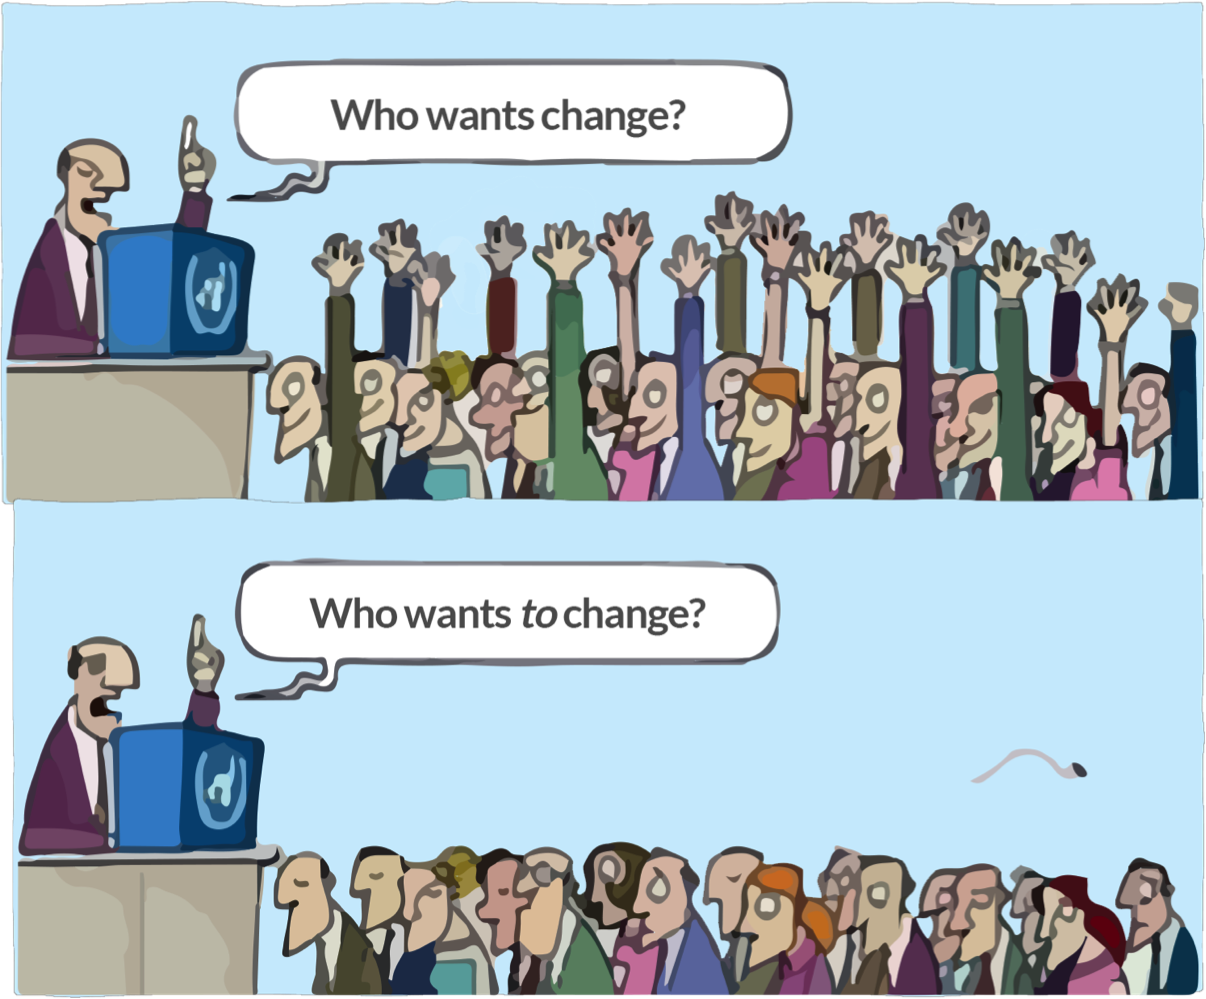 Who wants change?